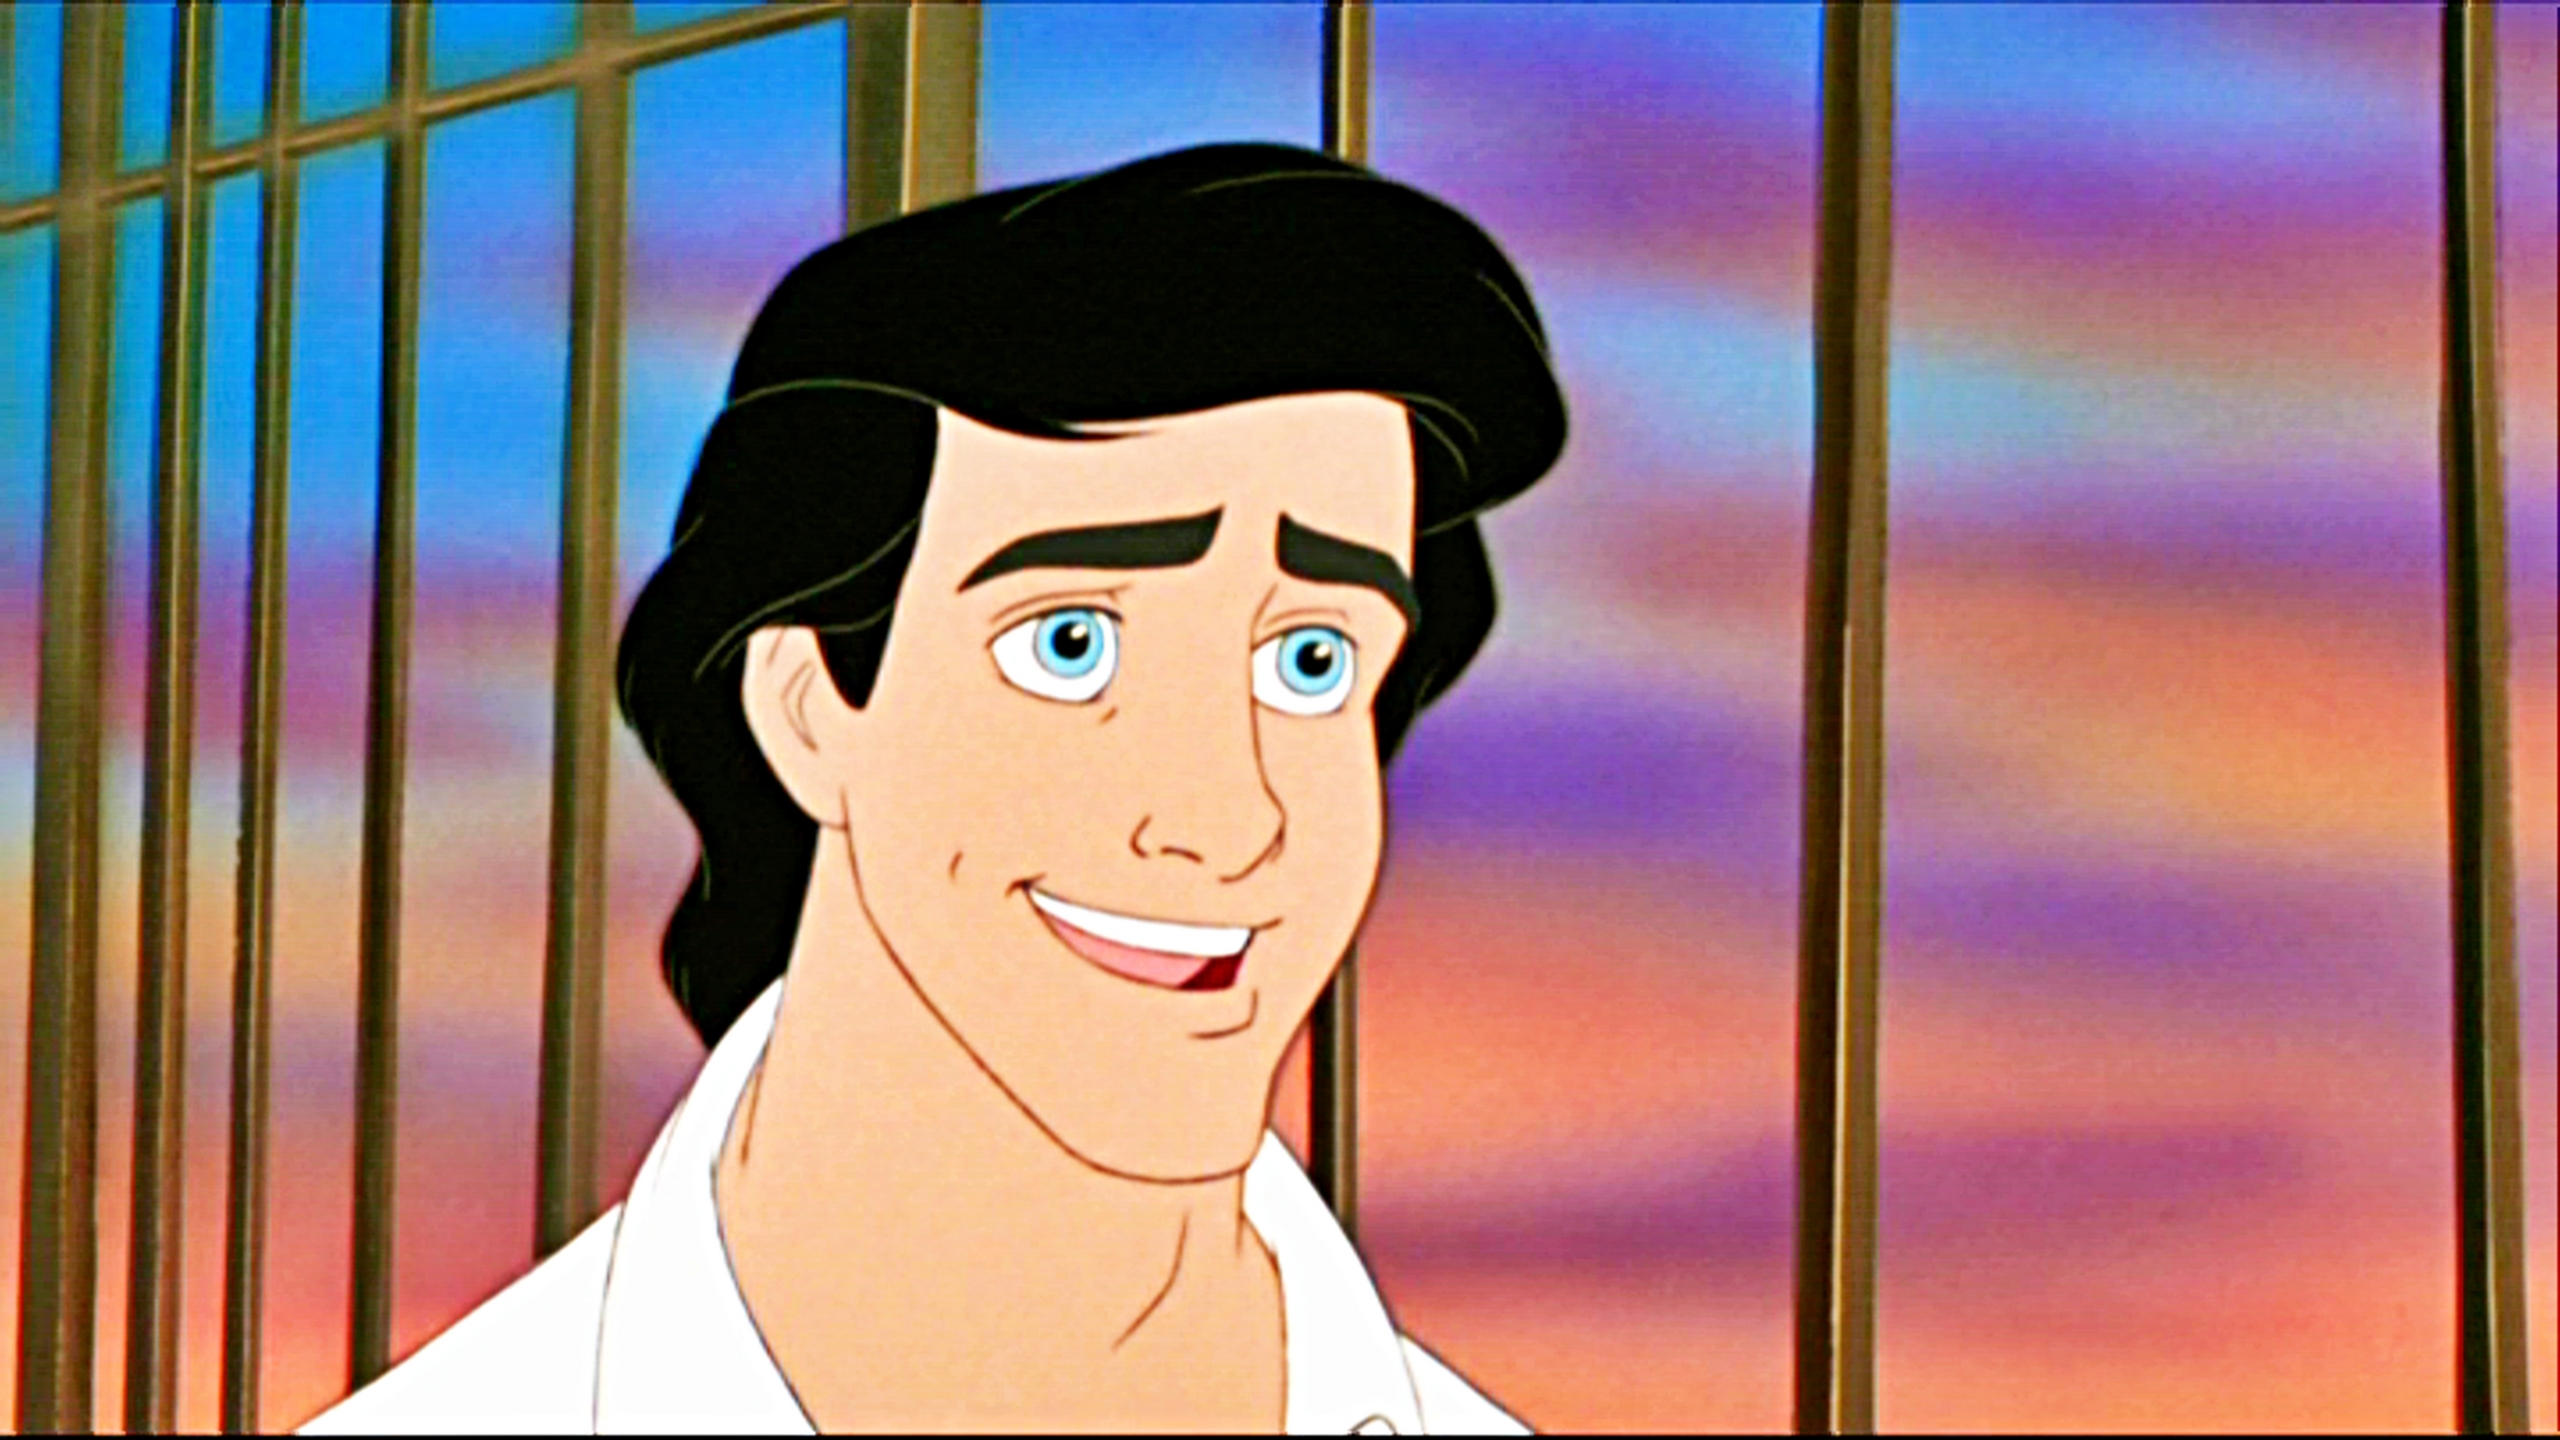 Uncategorized Prince Eric prince eric was the best disney and its ok to be attracted images4 fanpop com